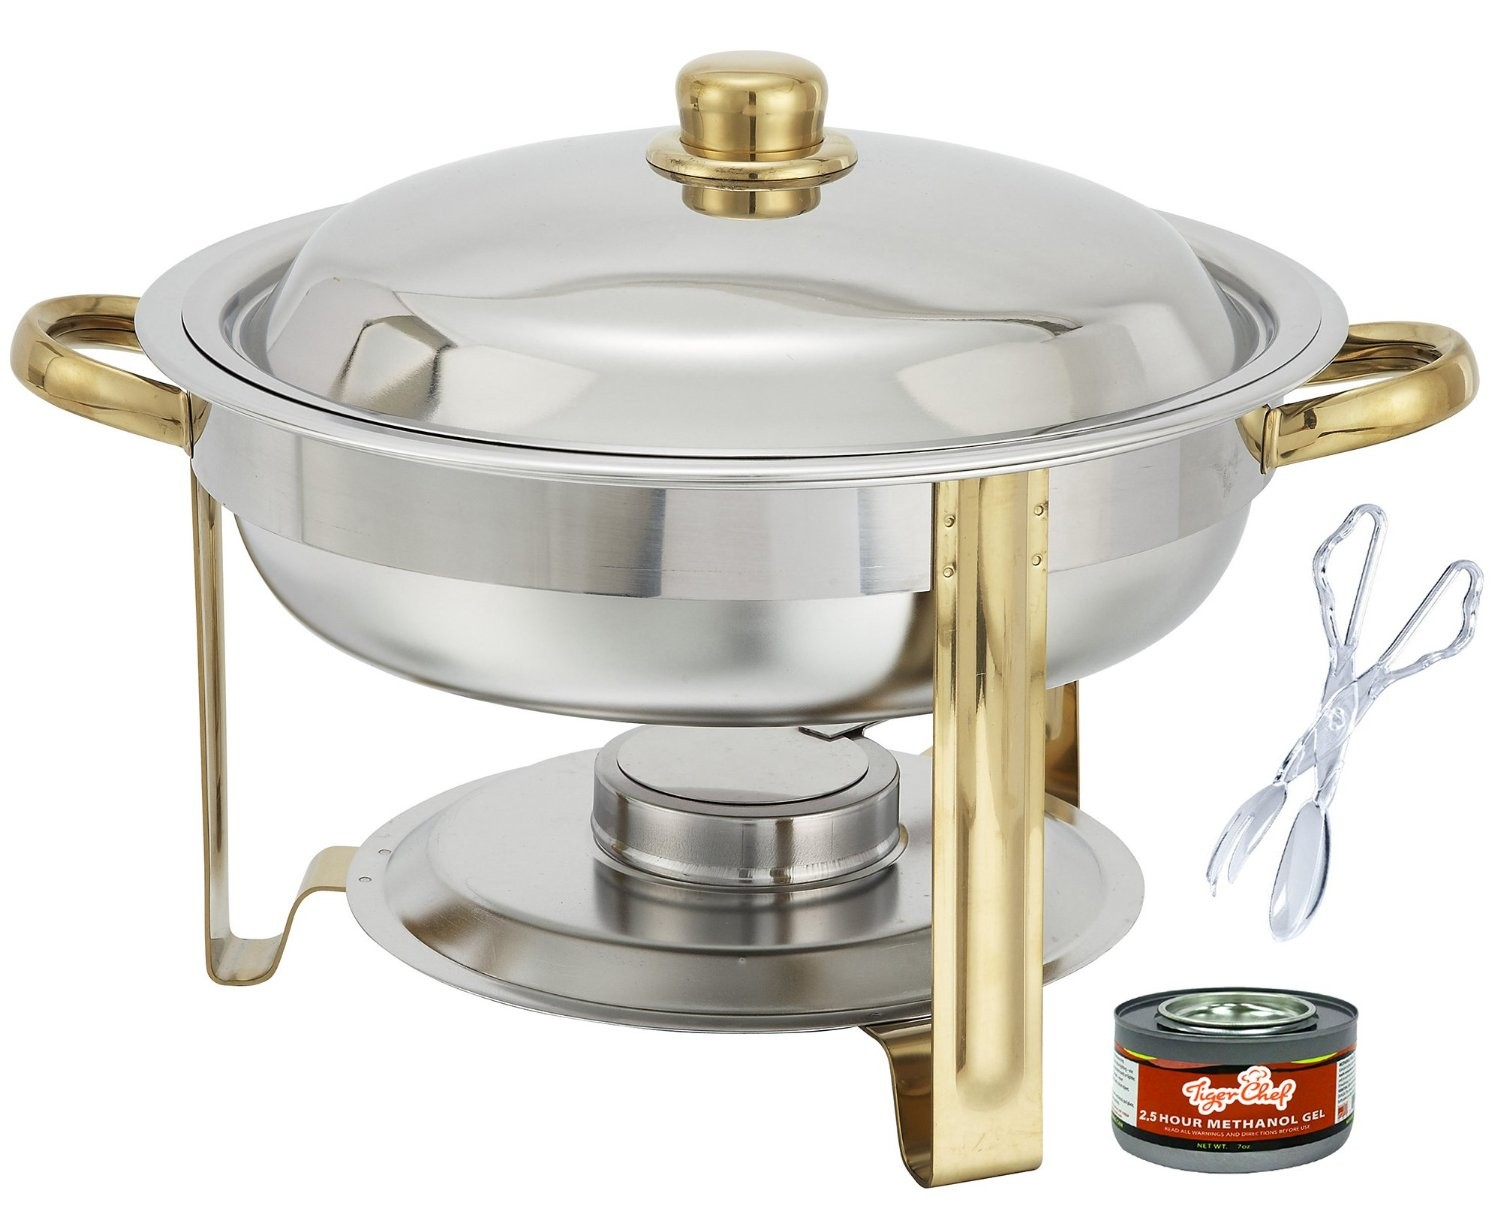 TigerChef Gold Accented Round Chafer 4 Qt, with Free Chafing Gel and Tongs